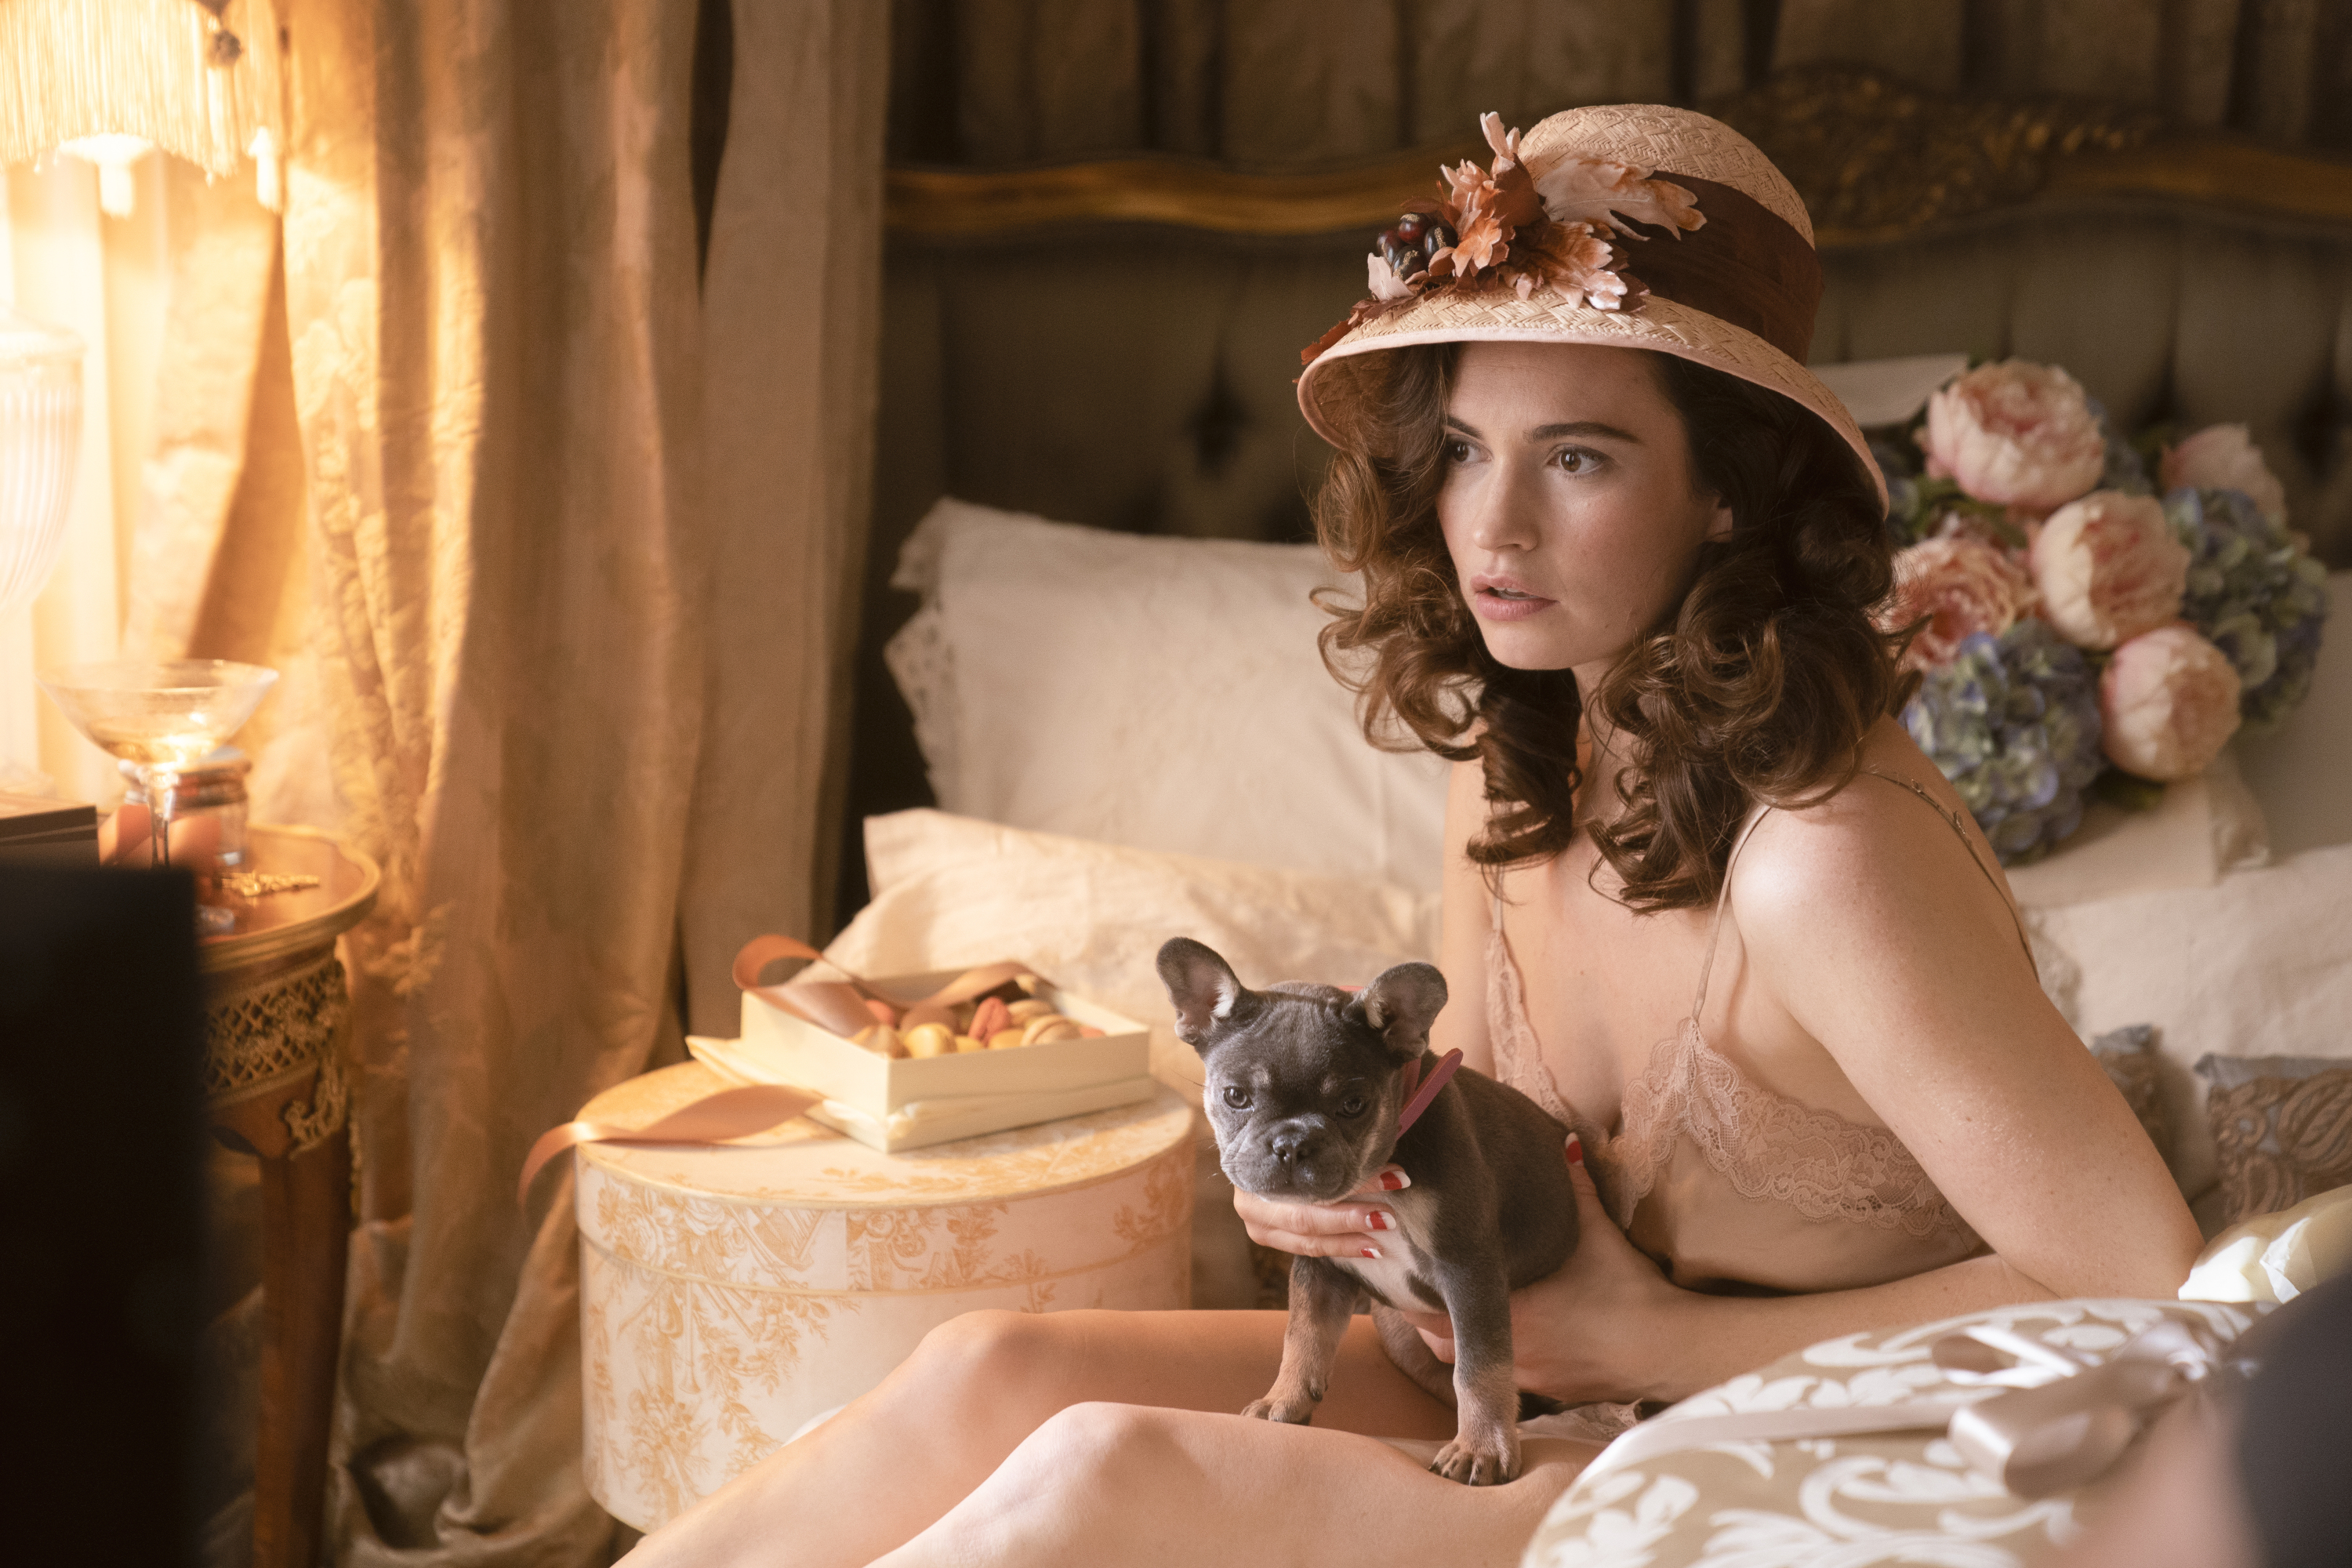 A brunette woman in a lace slip and large cloche hat sits on a bed, holding a lapdog. There's a box of macarons next to her, and a bouquet of peonies and hydrangeas behind her.